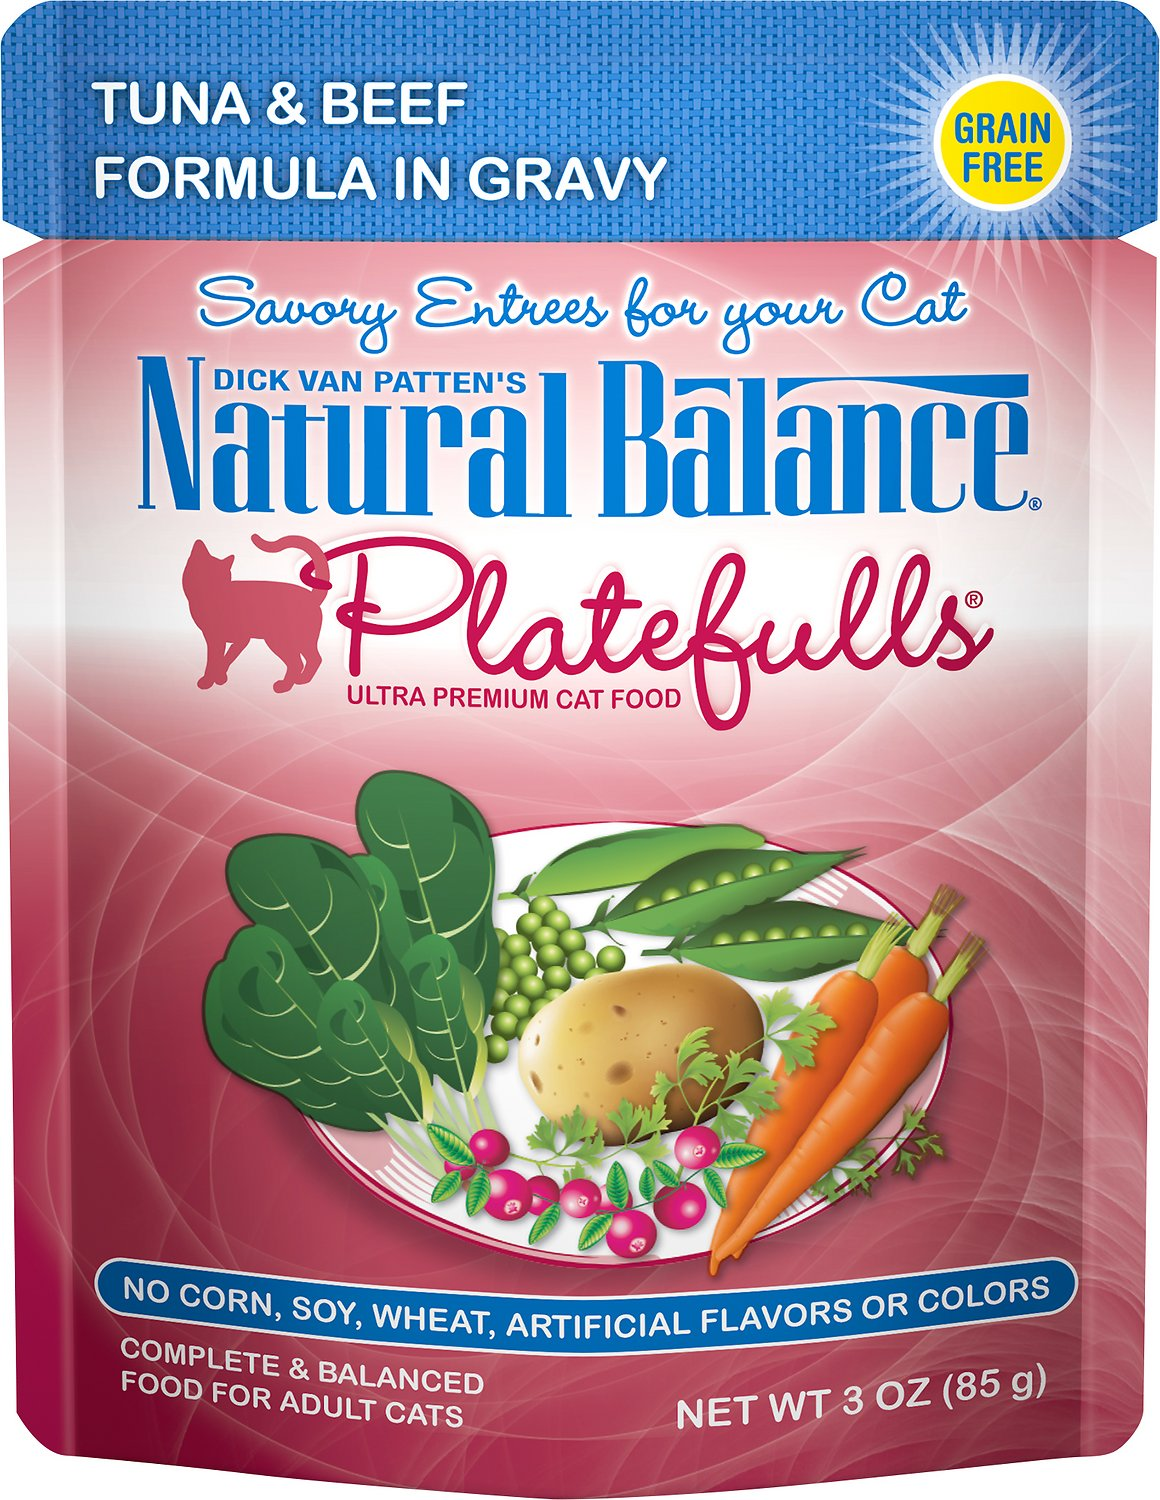 Natural Balance Platefulls Tuna & Beef Formula in Gravy Grain-Free Cat Food Pouches, 3-oz pouch